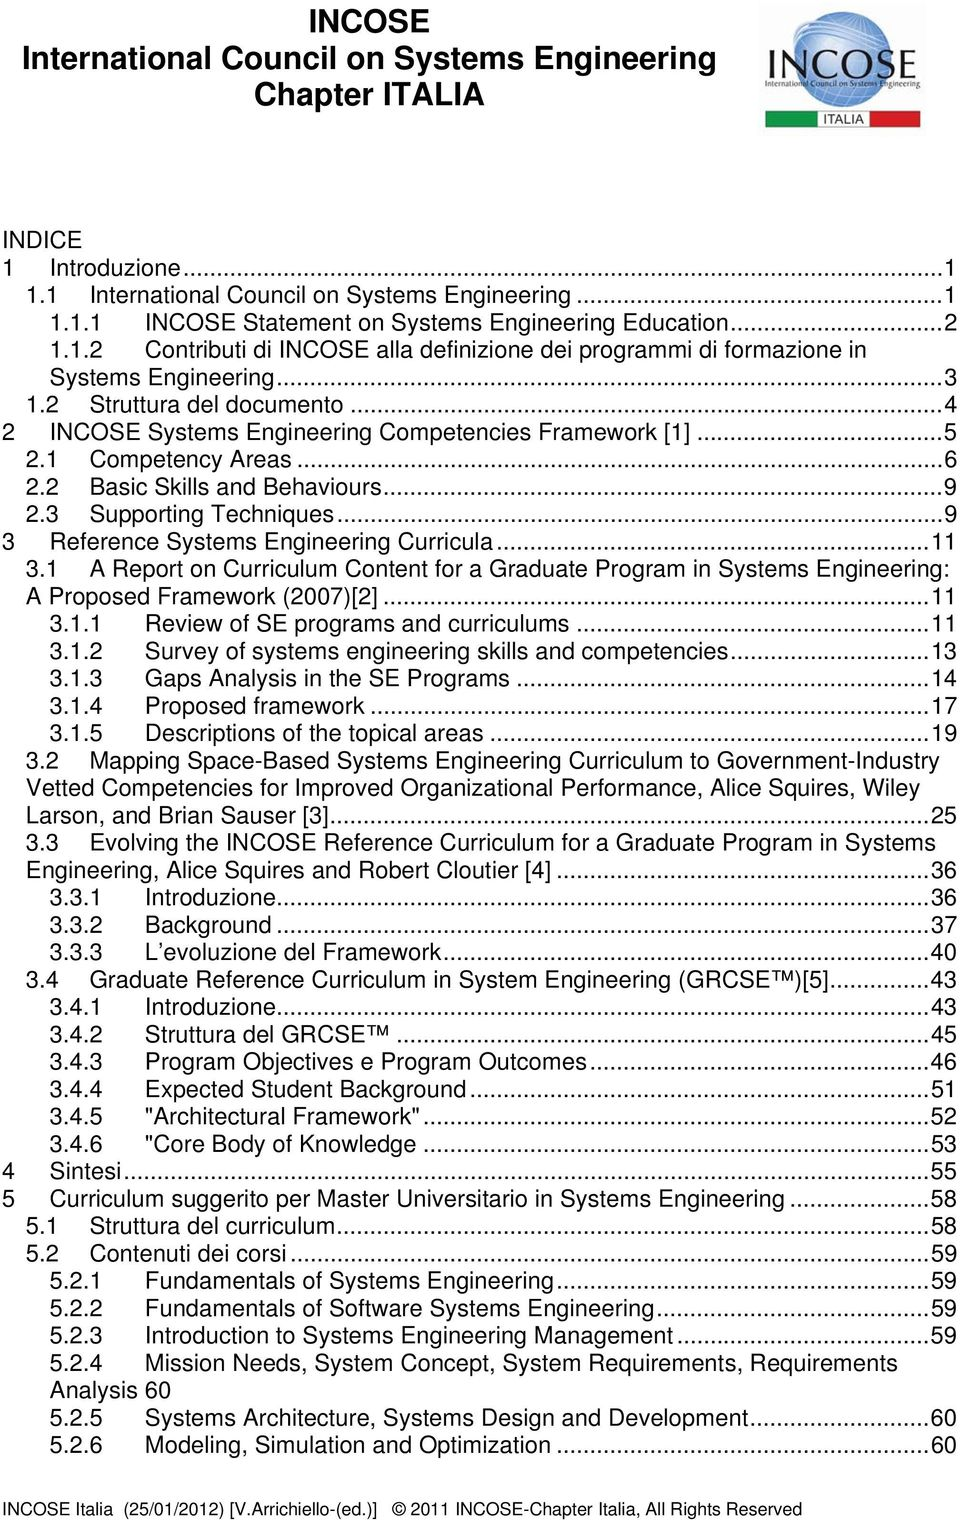 .. 9 3 Reference Systems Engineering Curricula... 11 3.1 A Report on Curriculum Content for a Graduate Program in Systems Engineering: A Proposed Framework (2007)[2]... 11 3.1.1 Review of SE programs and curriculums.